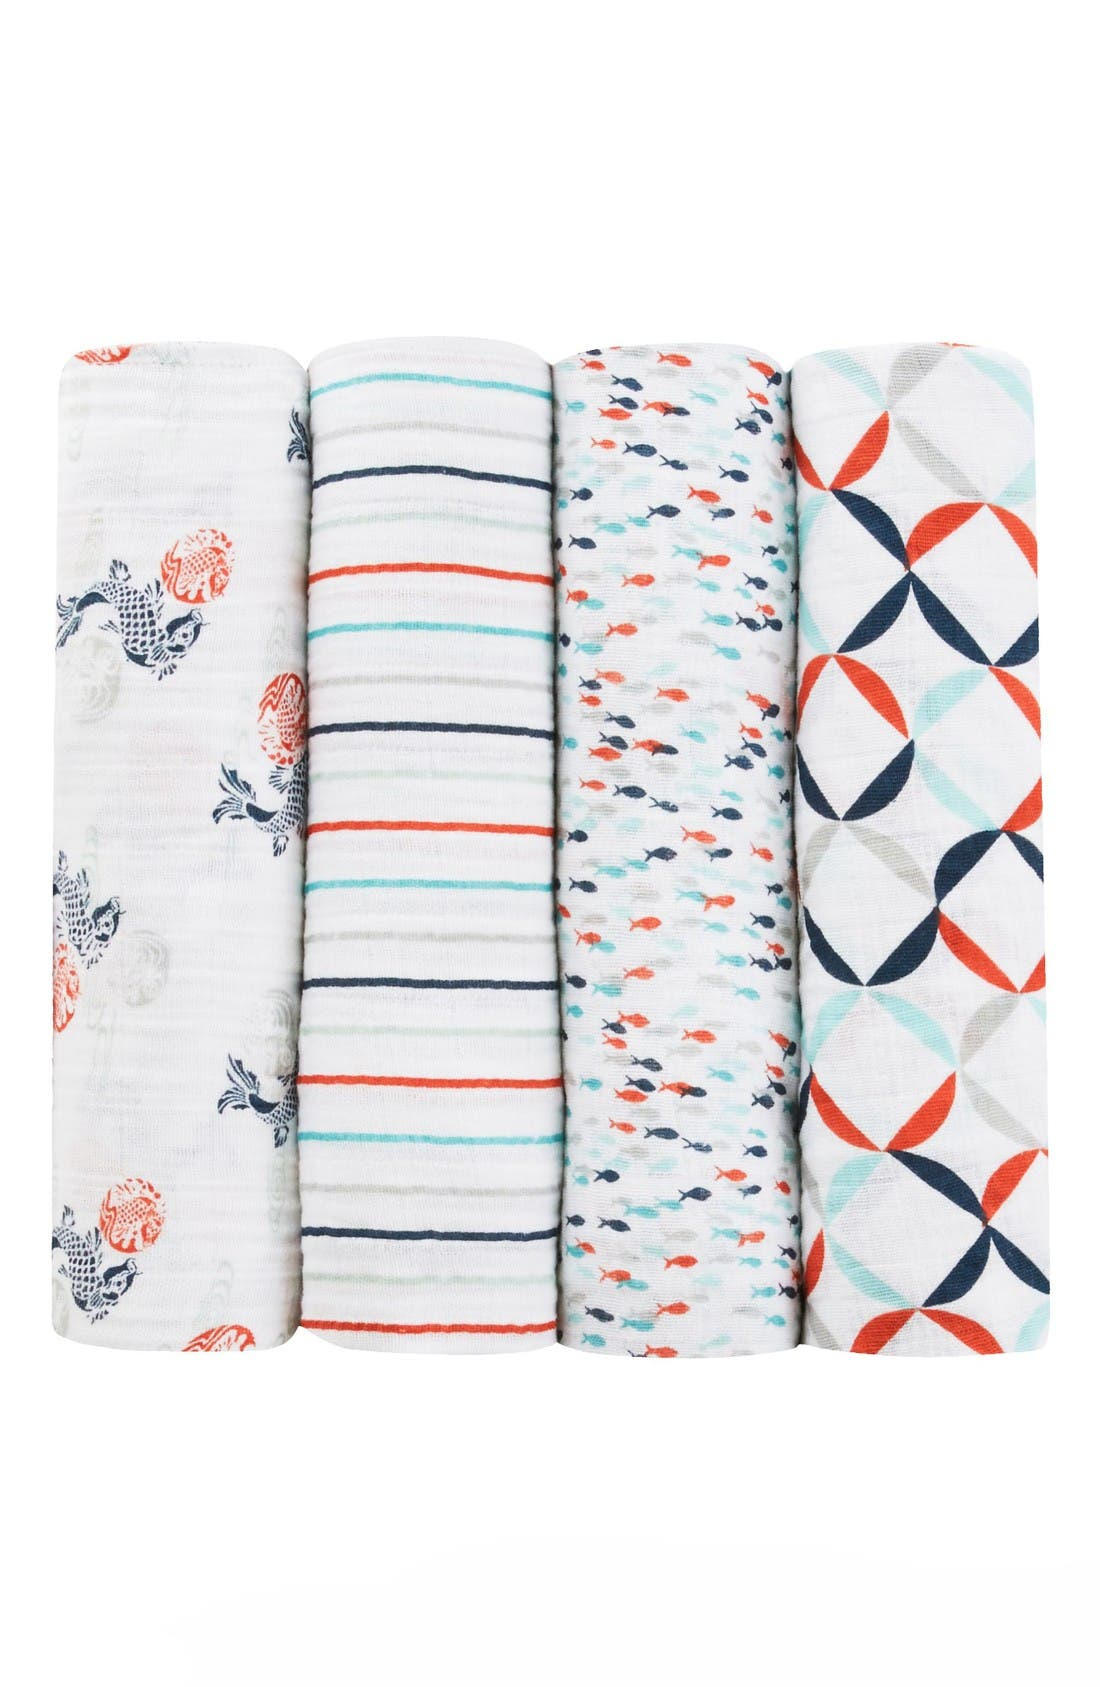 x Tea Collection 4-Pack Swaddling Cloths,                         Main,                         color, Koi